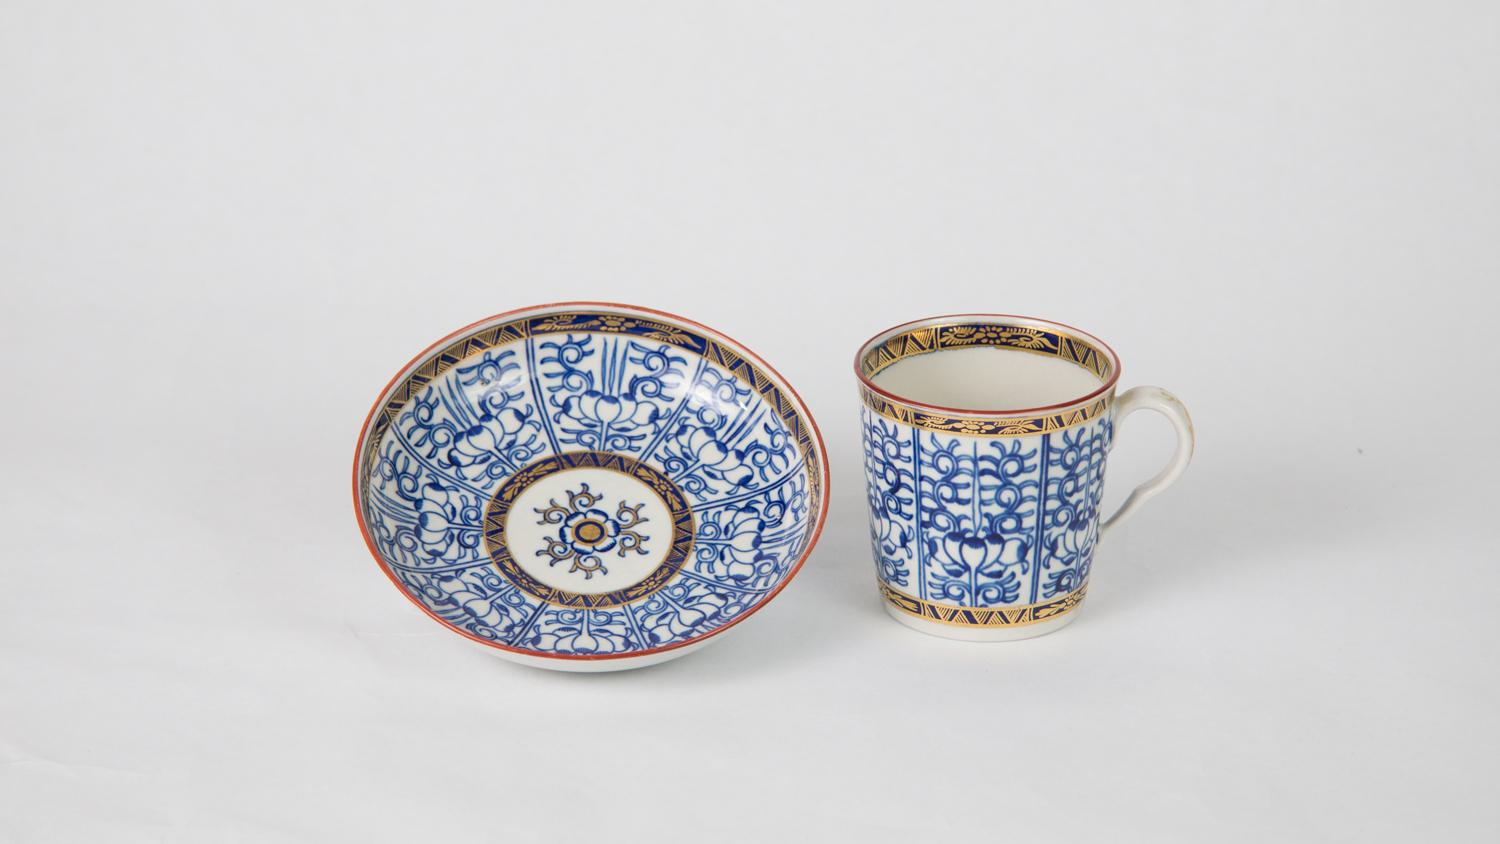 Royal Worcester (established 1751), Royal Lily Pattern Coffee Cup and Saucer, ca. 1770-1783, porcelain, Gift of Harlan E. and Theresa E. Moore, 1967-24-8; 1967-24-8.a